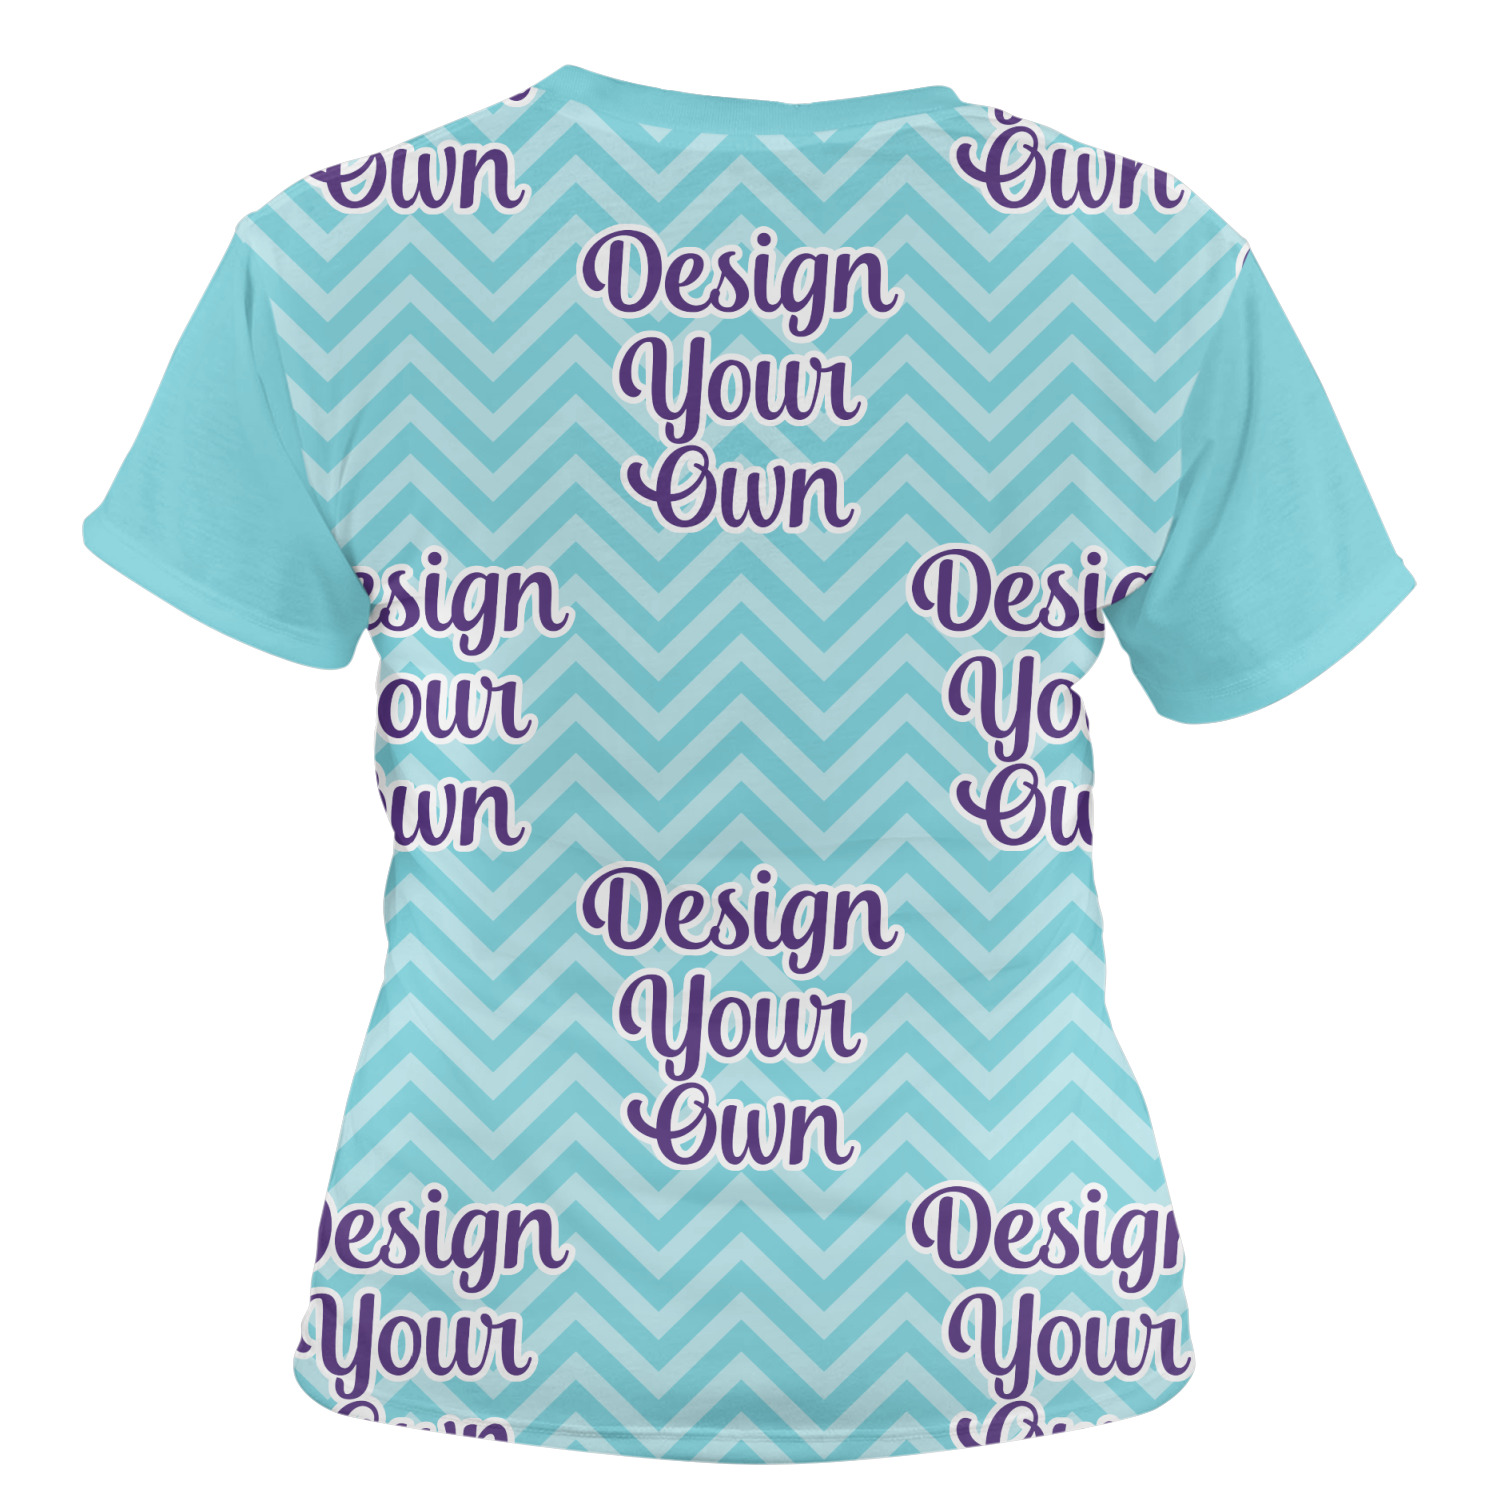 f43f3dd935bb0 Make And Design Your Own T Shirts - DREAMWORKS